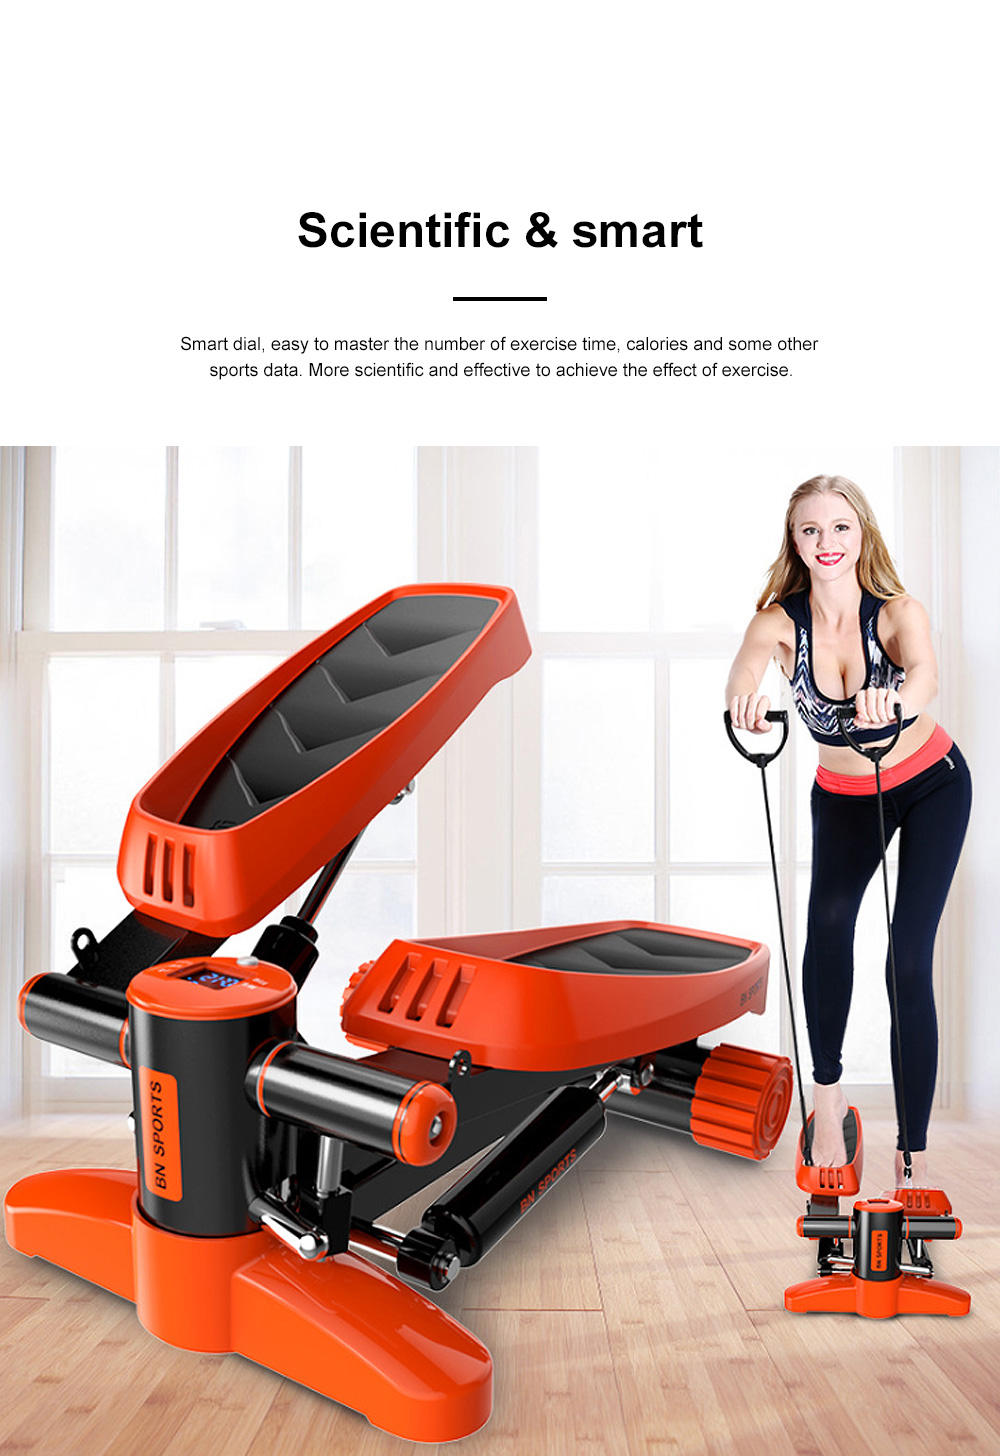 Mini Stair Steppers for Exercise and Calorie Counter Exercise Trainer Treadmill Machine for Whole Body Workout 2